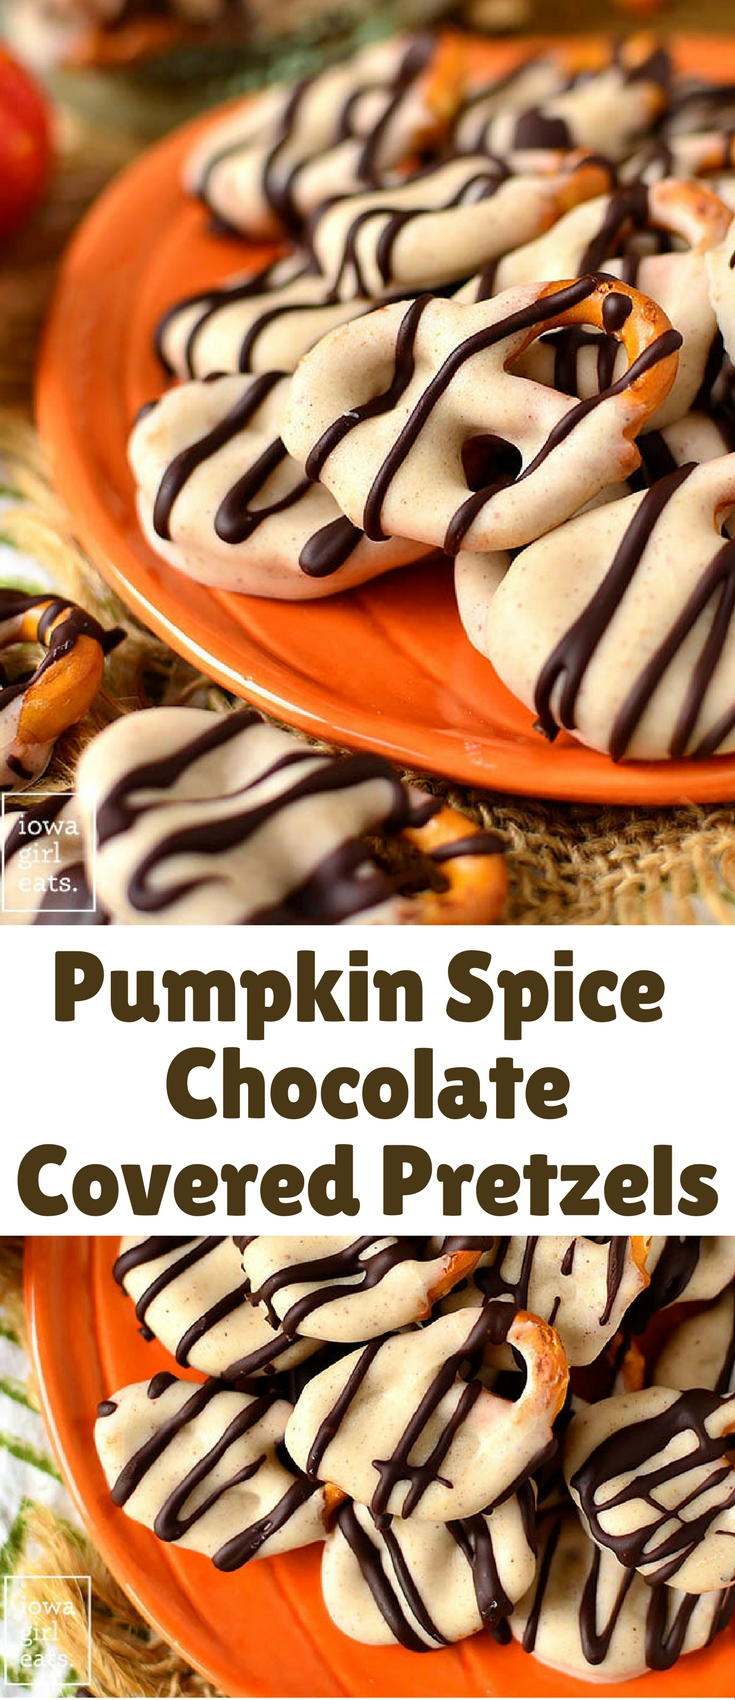 Pumpkin Spice Chocolate Covered Pretzels are absolutely irresistable…dare you to stop at just one! This easy gluten-free dessert recipe calls for just 4 ingredients.